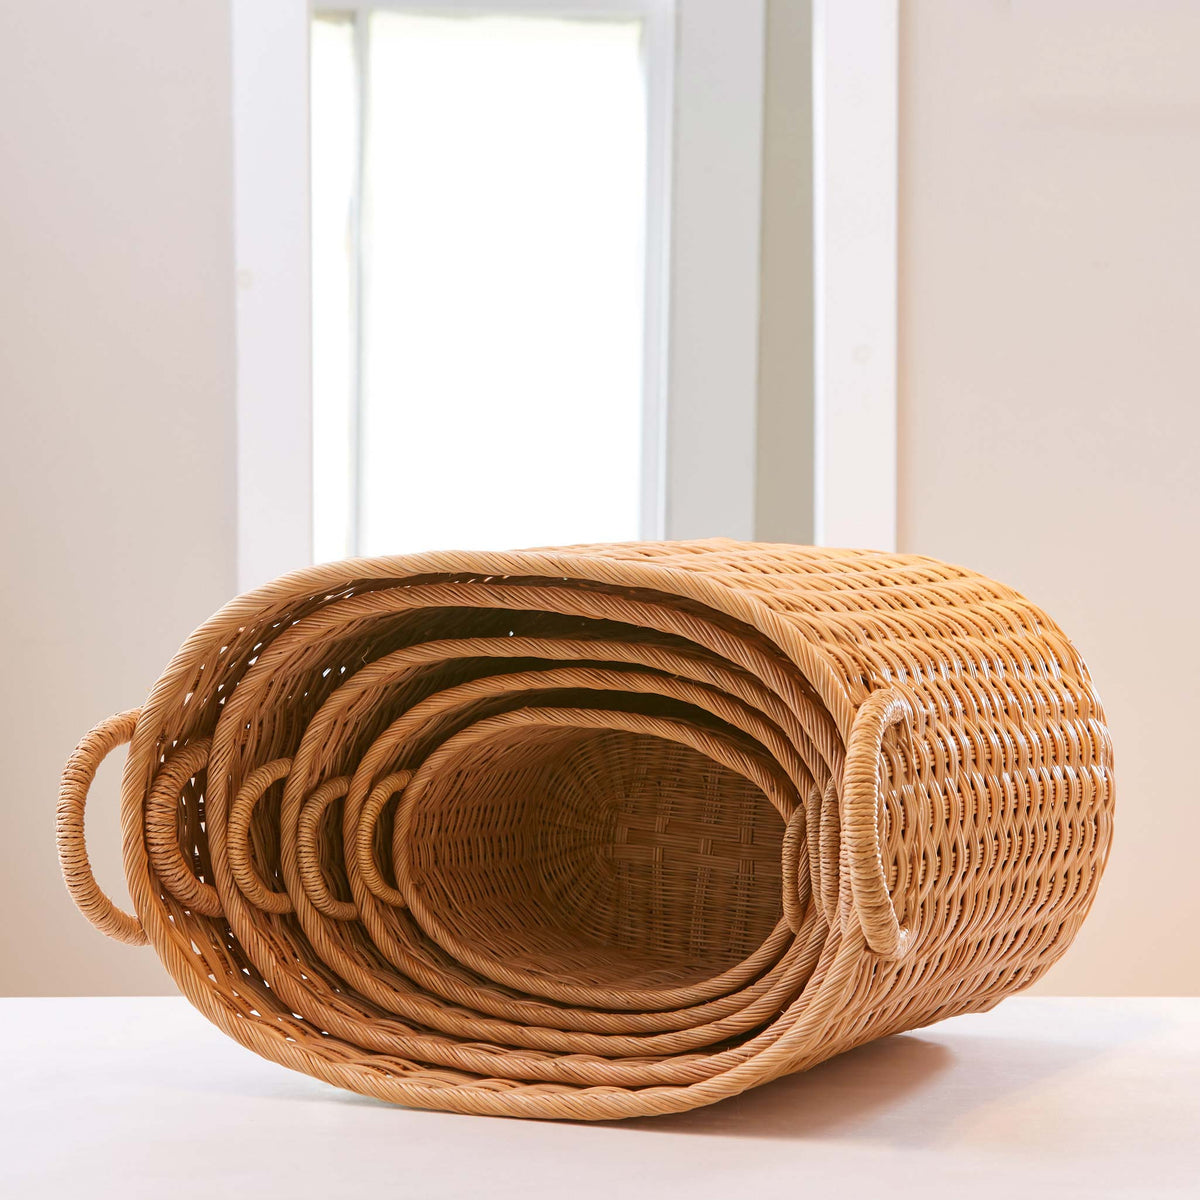 Oval rattan storage baskets. Storage baskets with lids and handles. Great baskets for storage, basket for clothes, bathroom storage. XL, L, M, S, XS.